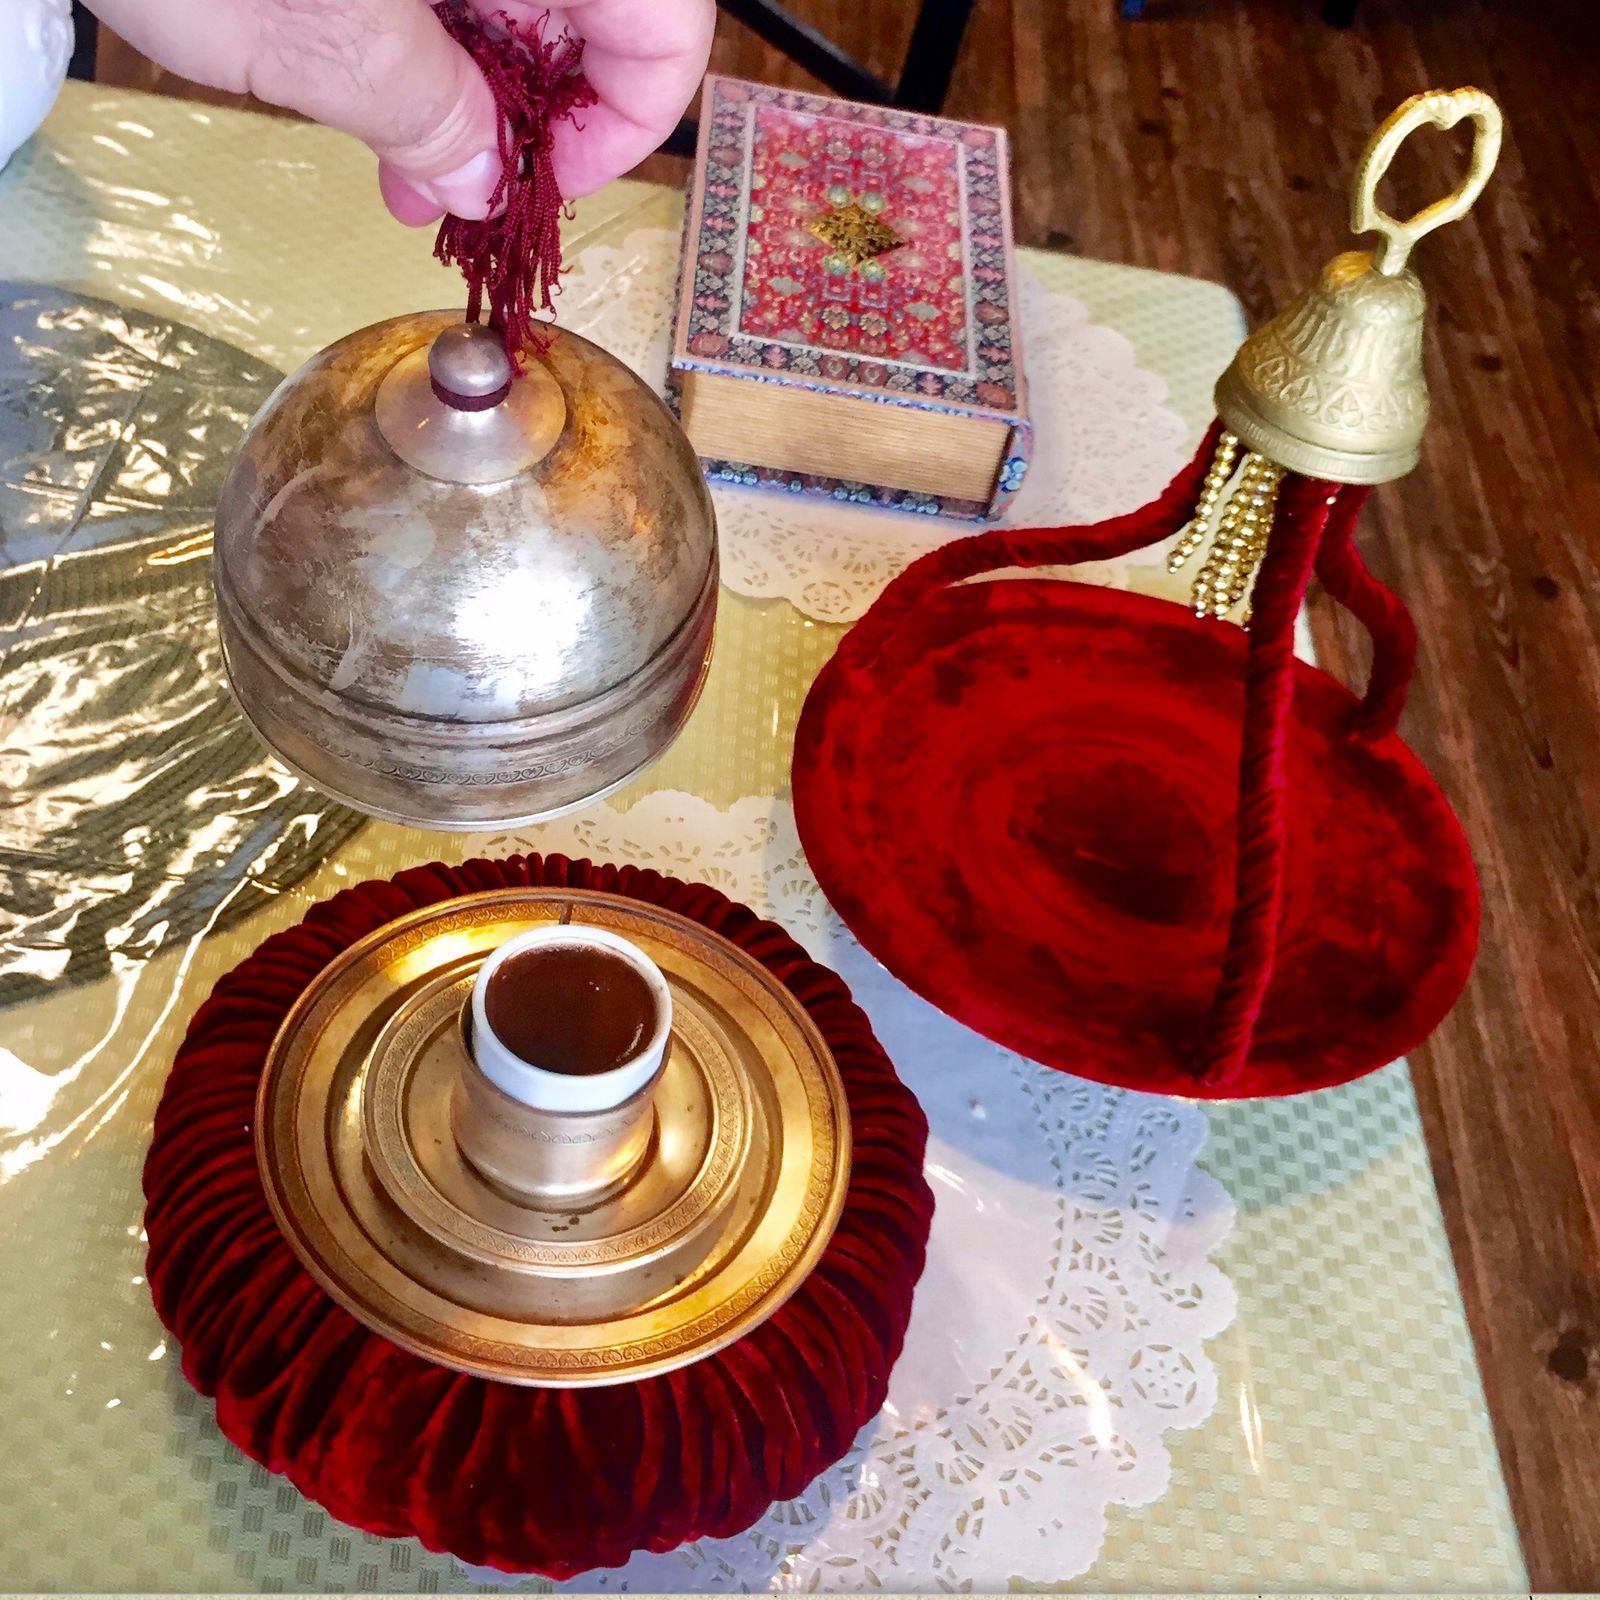 Turkish coffee is served with royal pomp at Star Manti in Delran. (CRAIG LABAN / Staff)